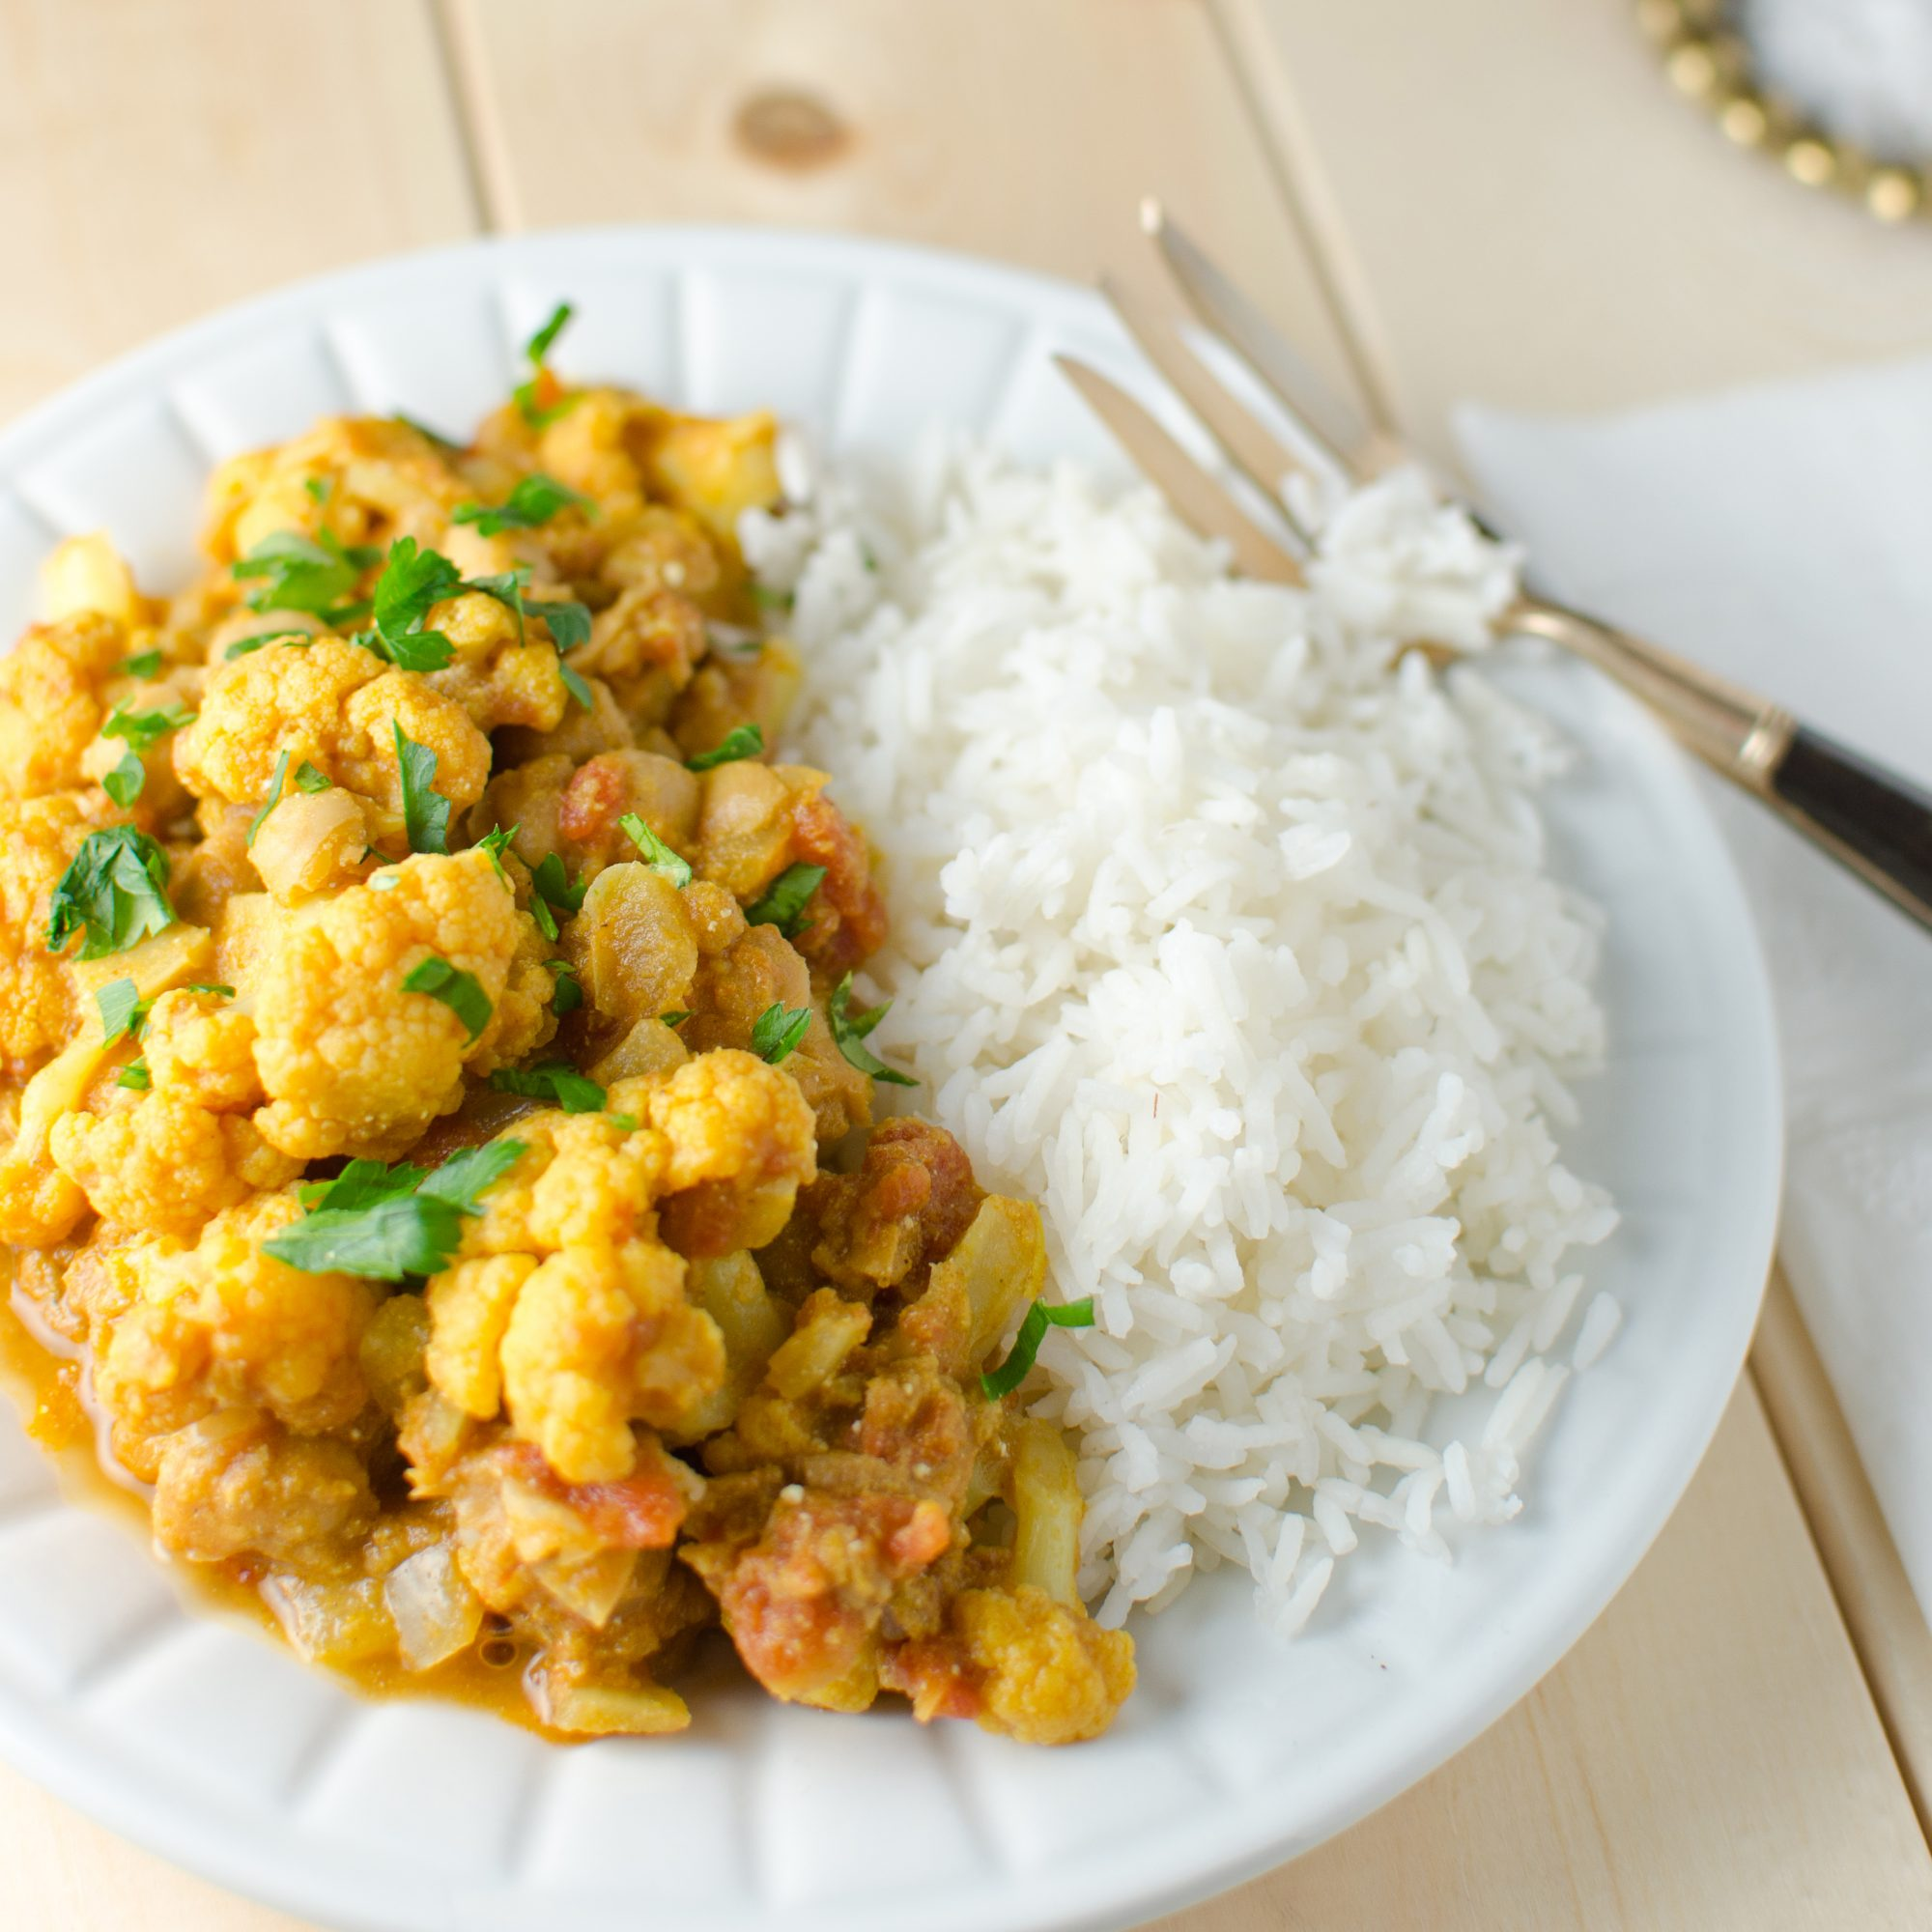 Indian chickpea and cauliflower curry recipe kristen stevens 201405 r indian chickpea and cauliflower curryg forumfinder Images